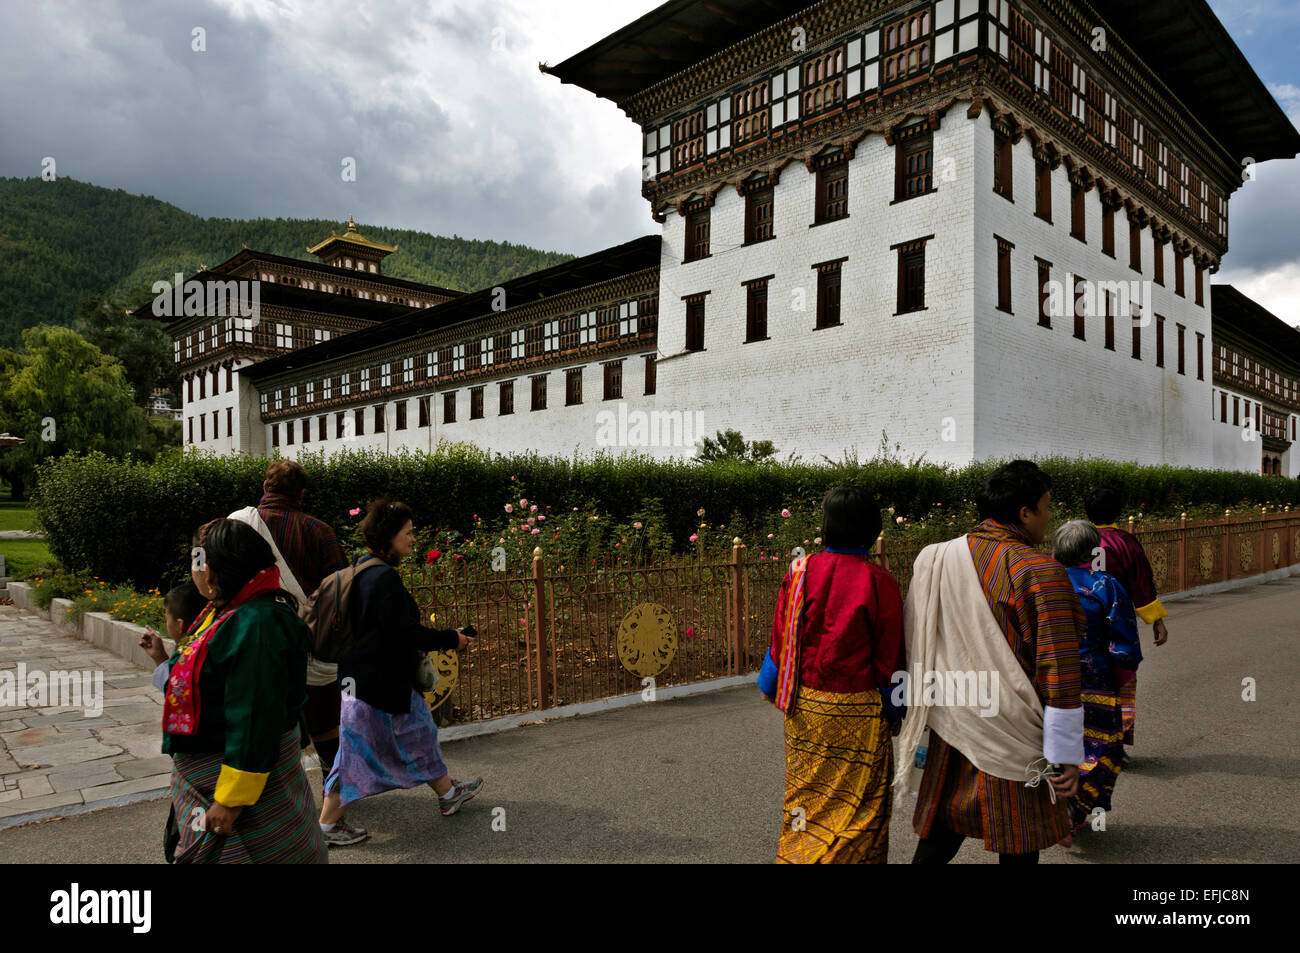 BHUTAN - Tashichoedzong in the capital city of Thimphu, the center of government for the country. - Stock Image